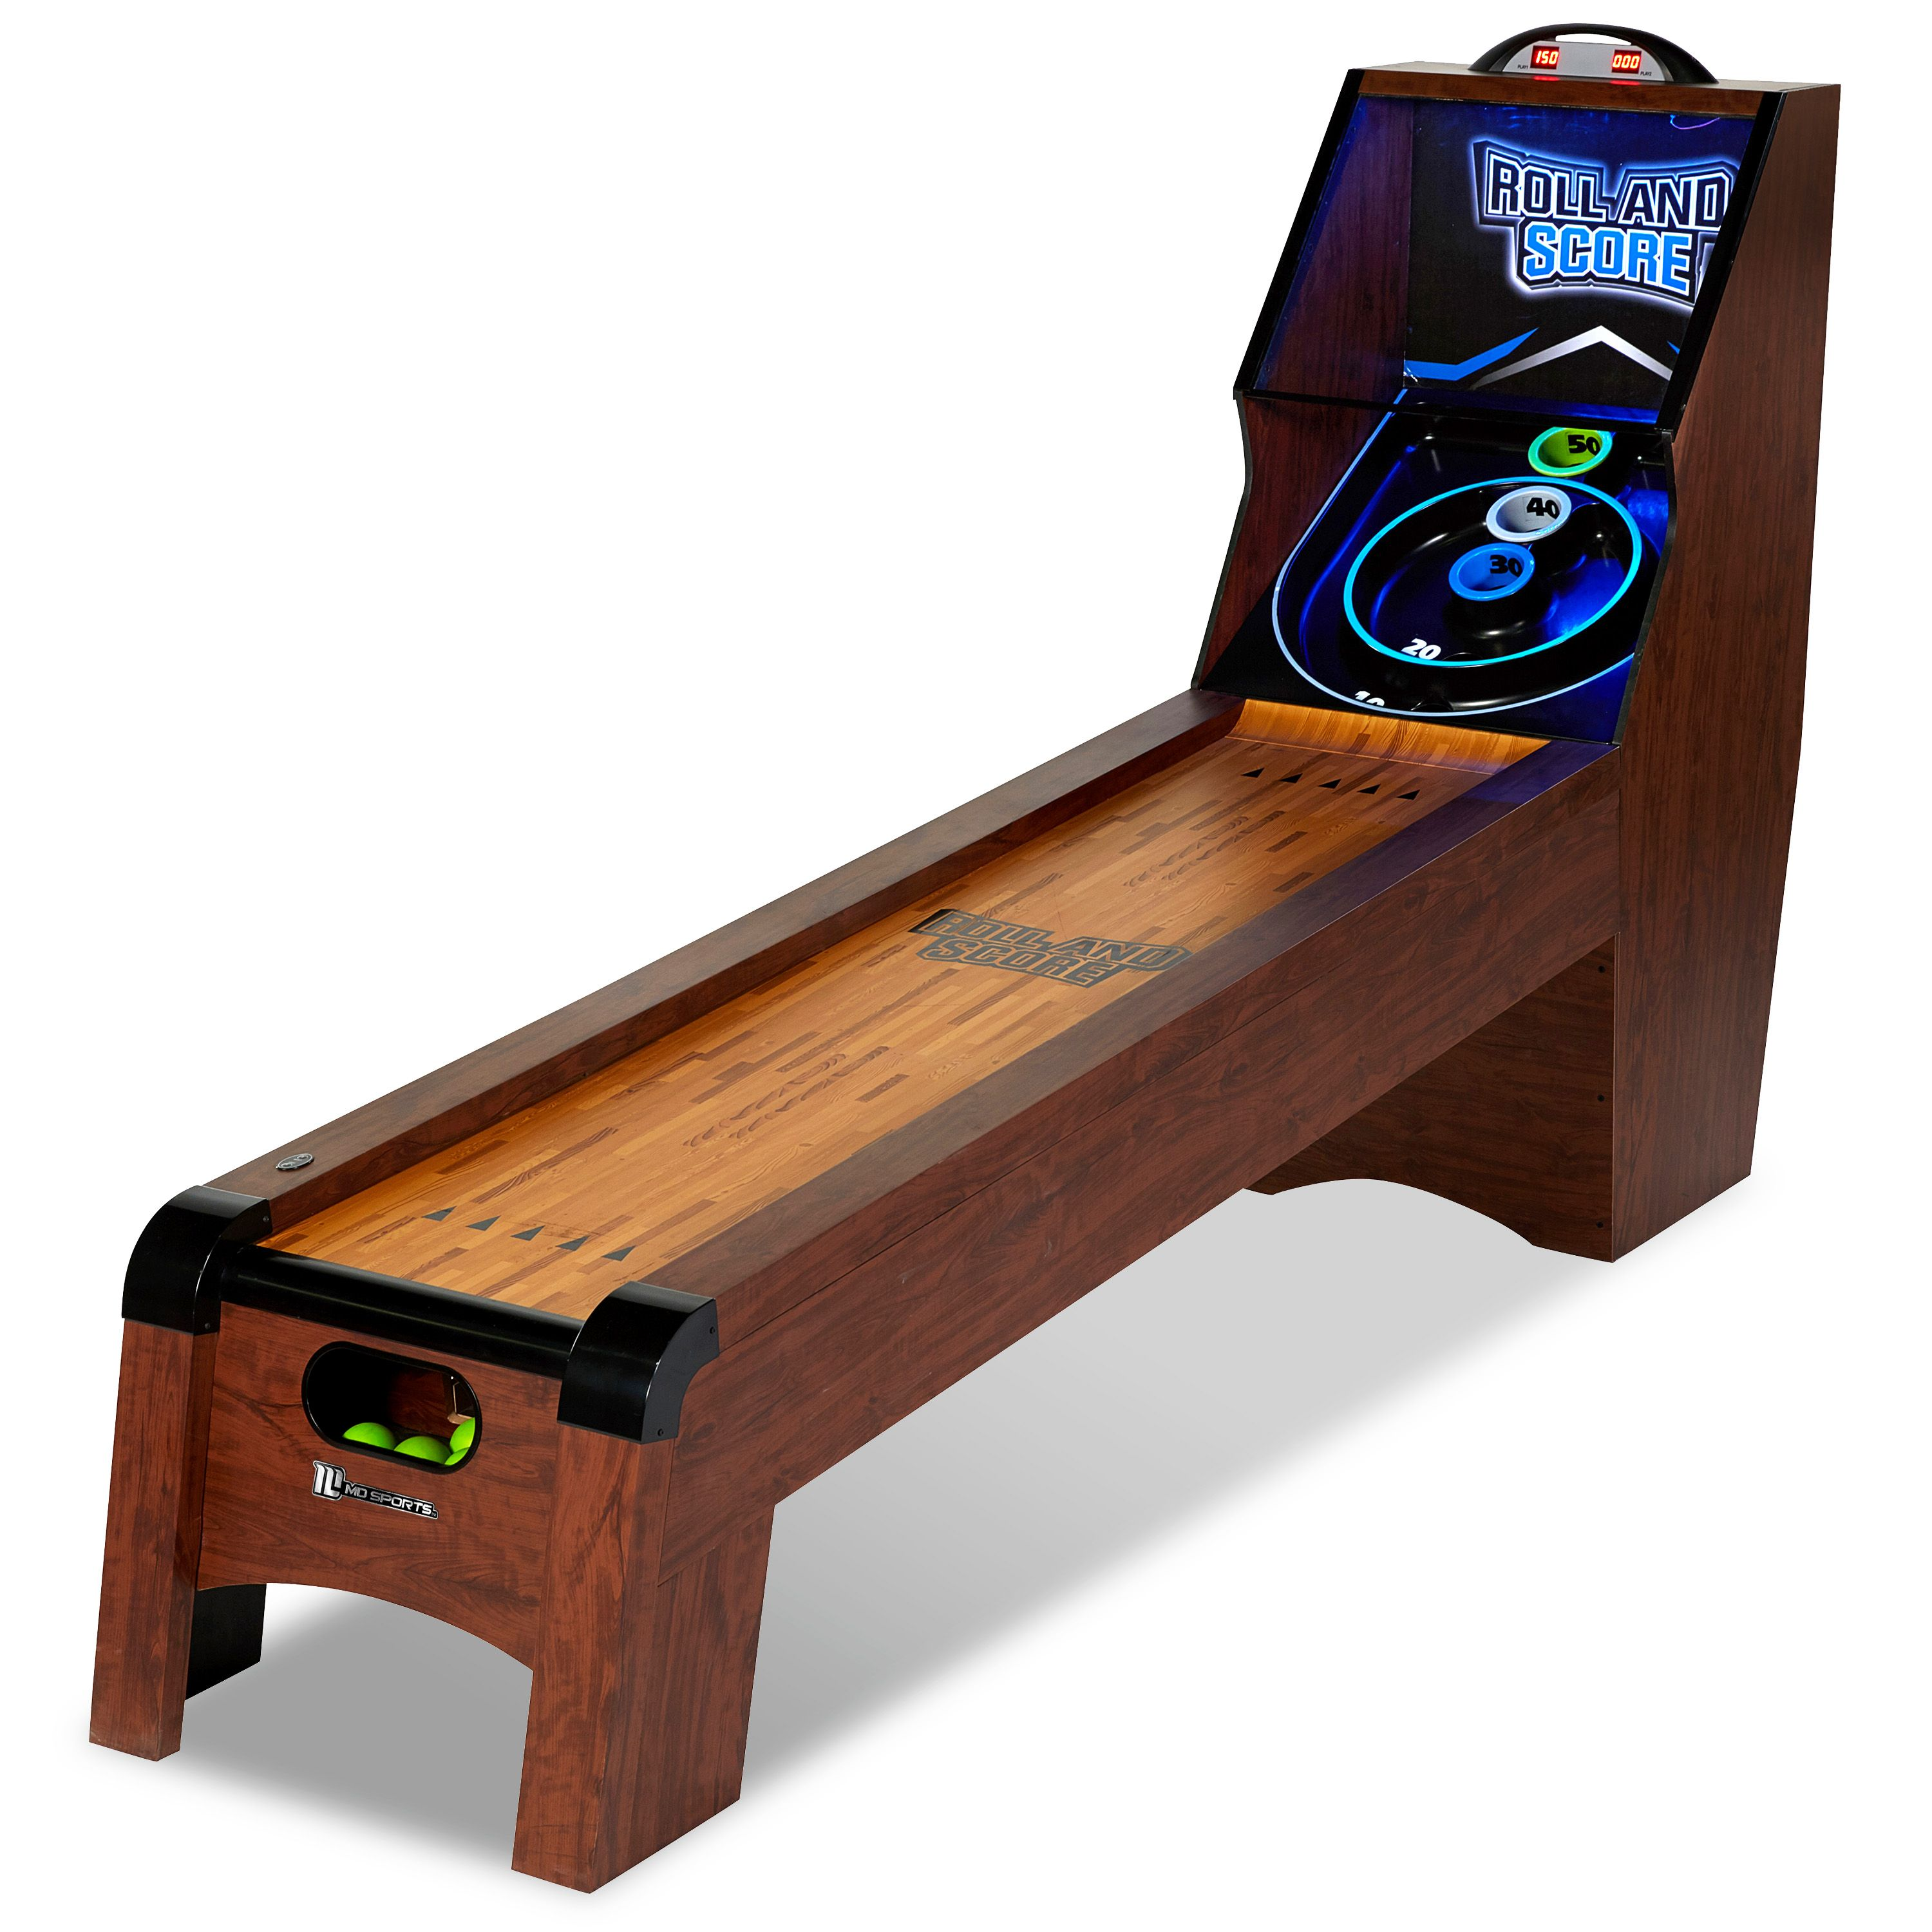 Sports & outdoors Game room basement, Game room decor